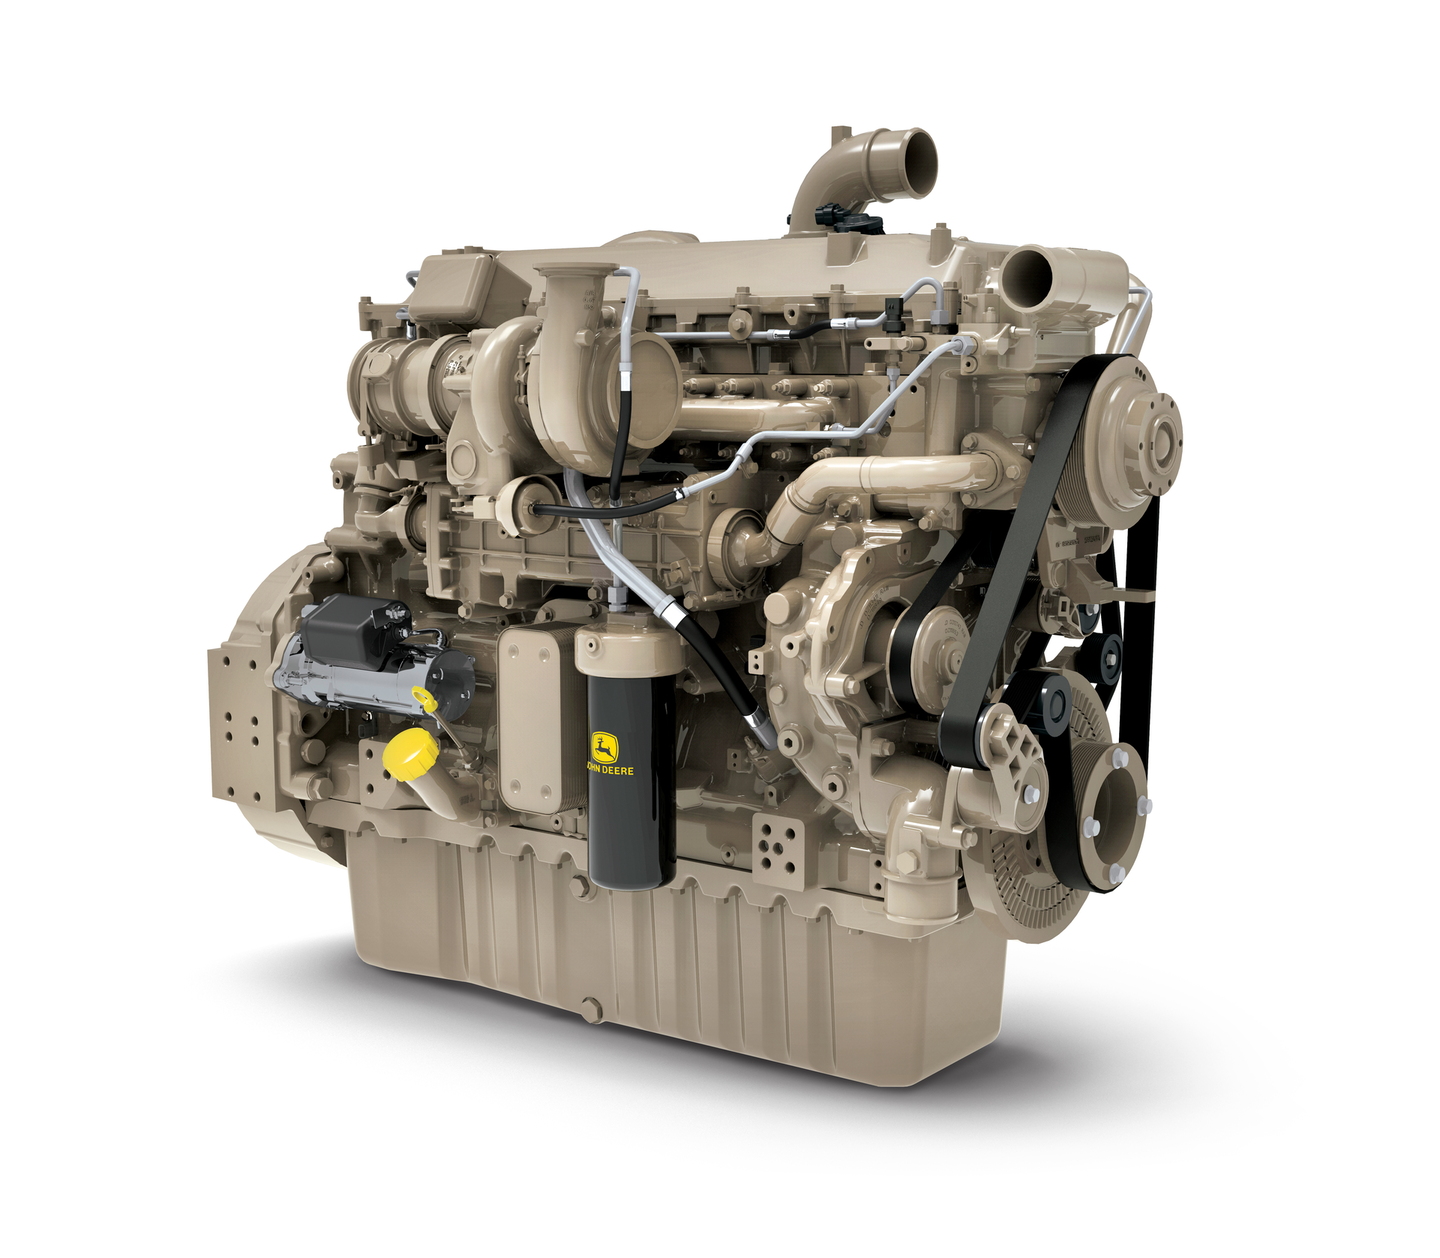 John Deere's 13.6L engine features a next-generation ECU utilizing advanced model-based controls which enhance reliability and transient control.